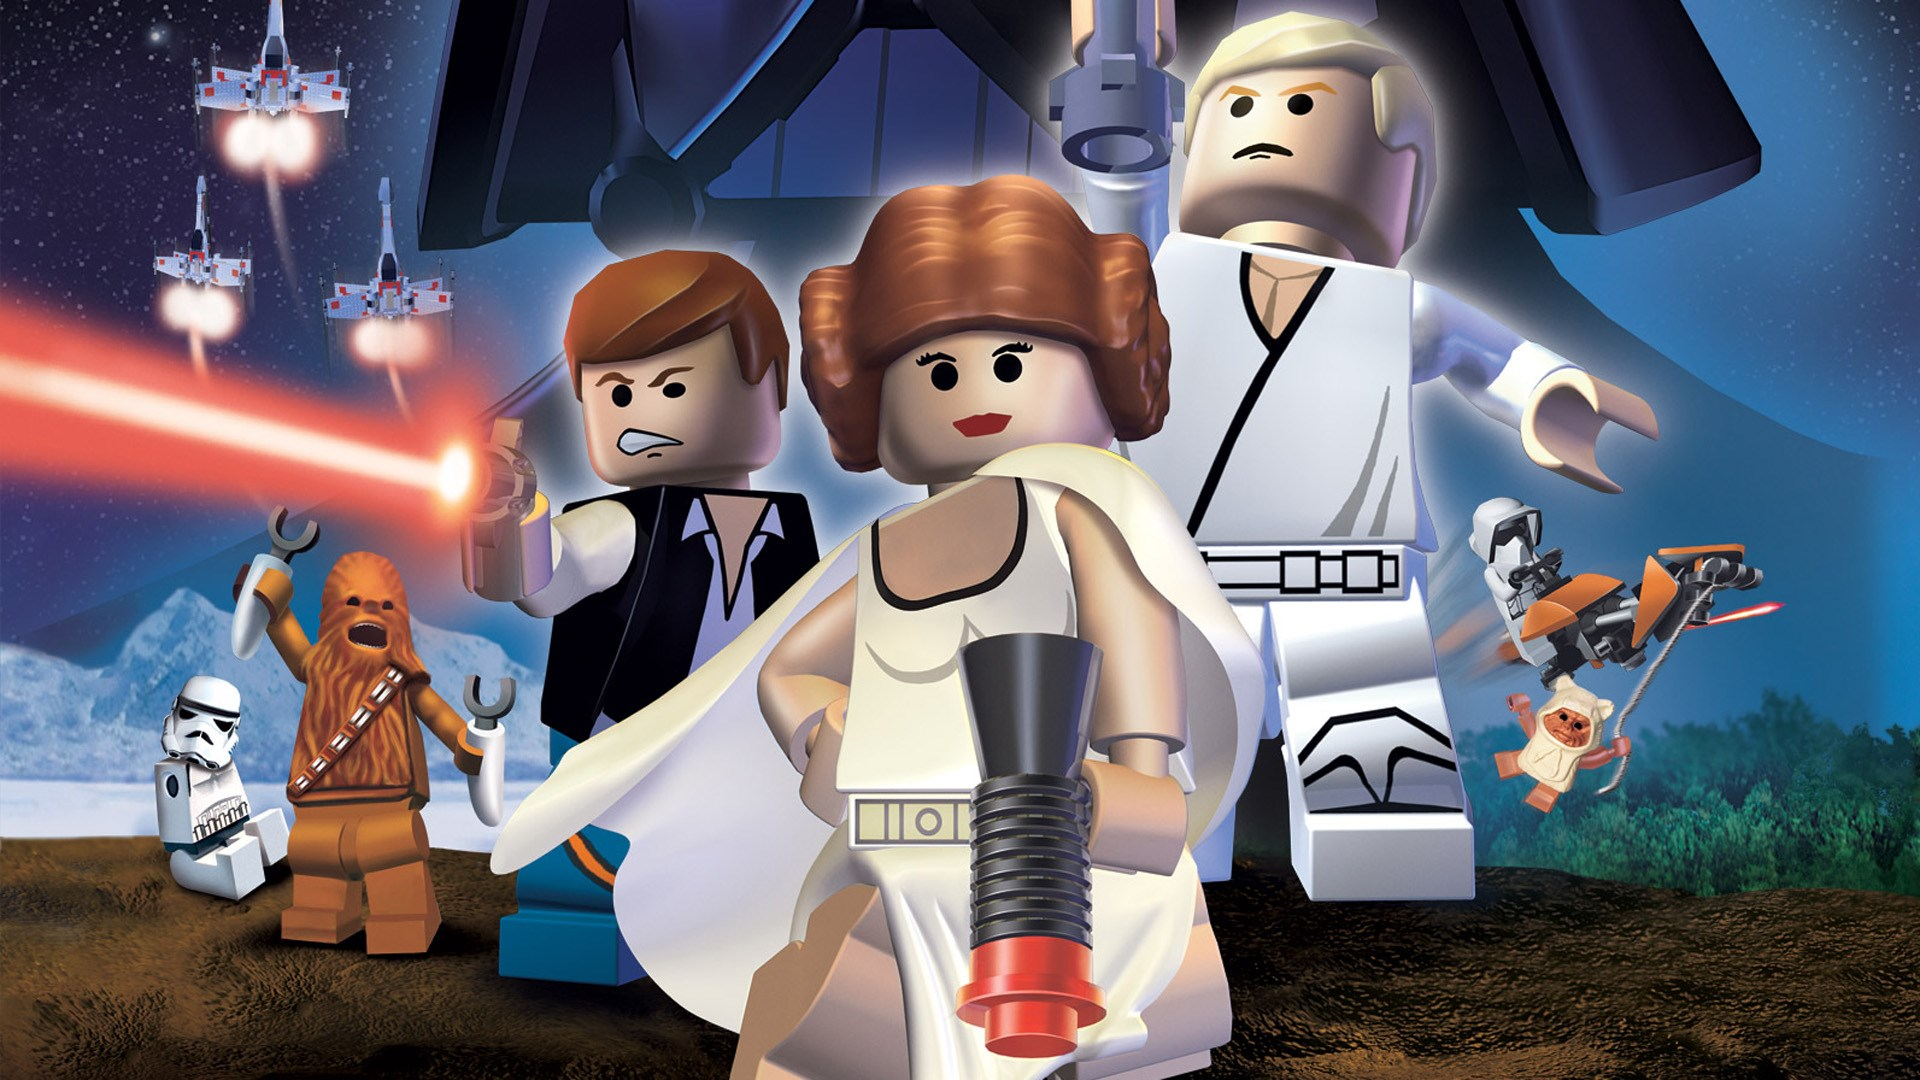 1920x1080-HQ-Definition-Desktop-lego-star-wars-ii-the-original-trilogy-wallpaper-wpc580913